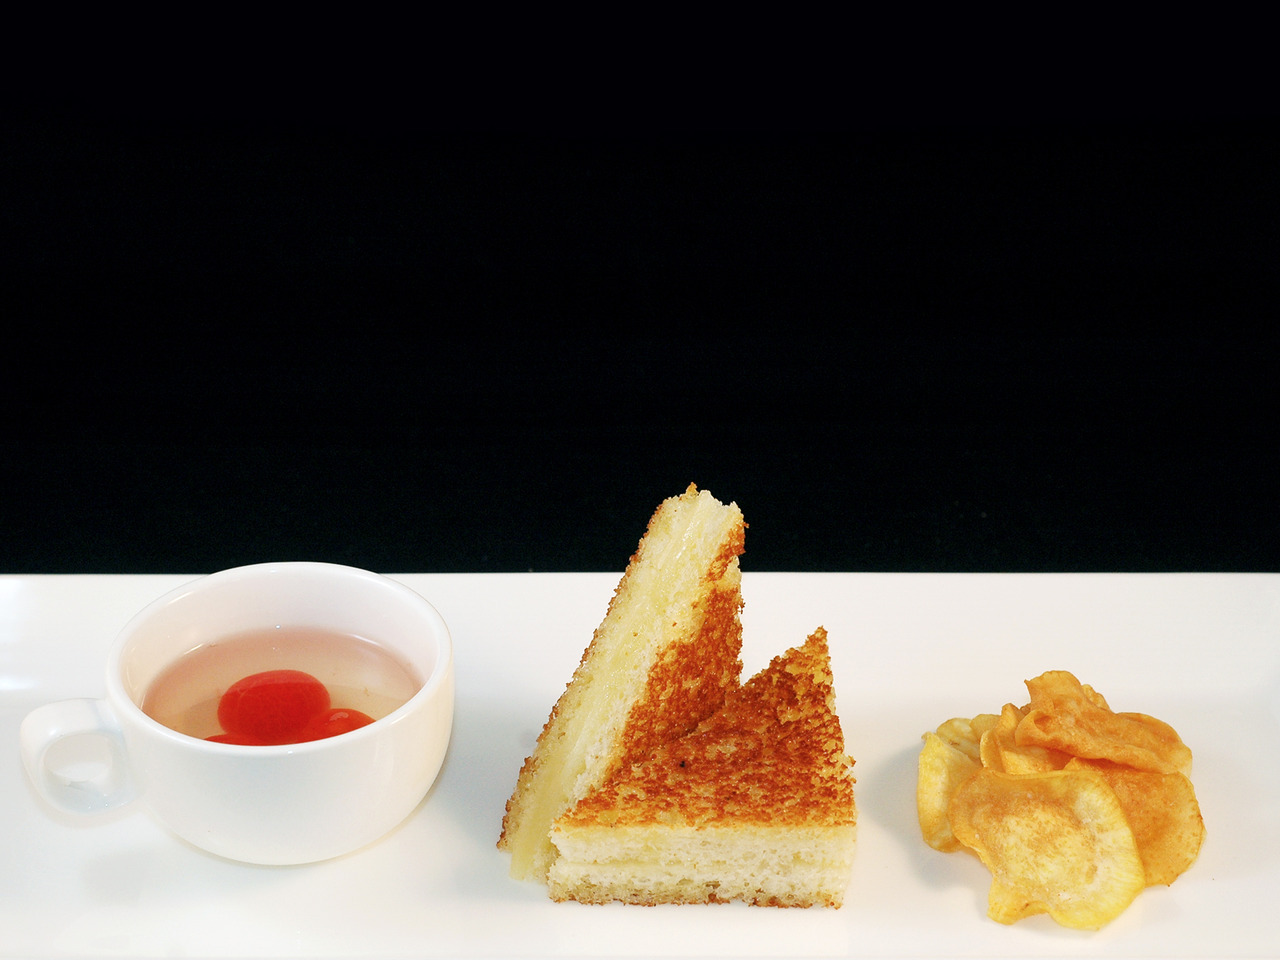 FRENCH LAUNDRY'S GRILLED CHEESE   grilled cheese - tomato consomme - sweet potato chips